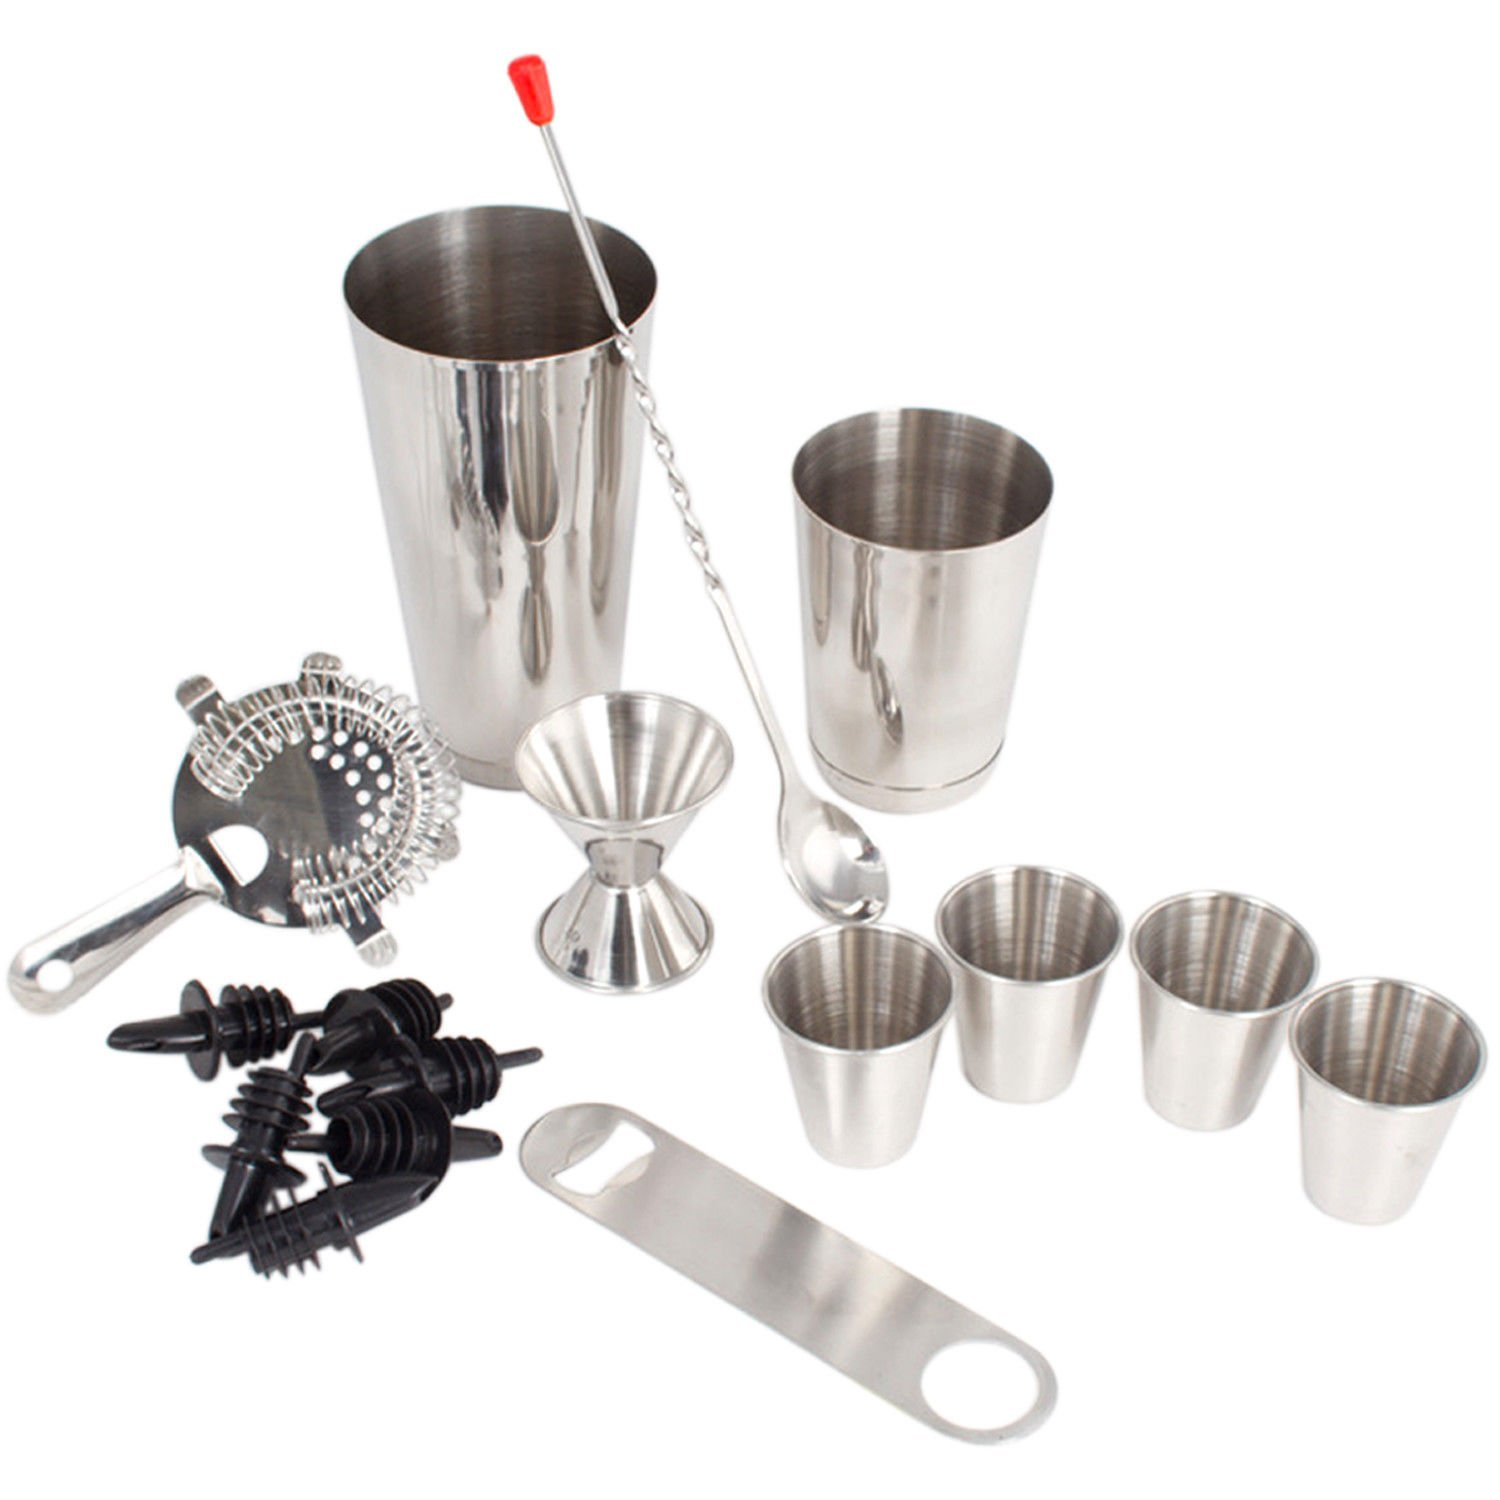 16 Pcs Cocktail Shaker Home Bar Set – Complete Bartender Kit with Double Bar Jigger, Pour Spouts, Drink Shaker, Hawthorne Strainer, Bar Spoon, Bottle Opener and Tin Shot Glasses by Lexi Home (Image #9)